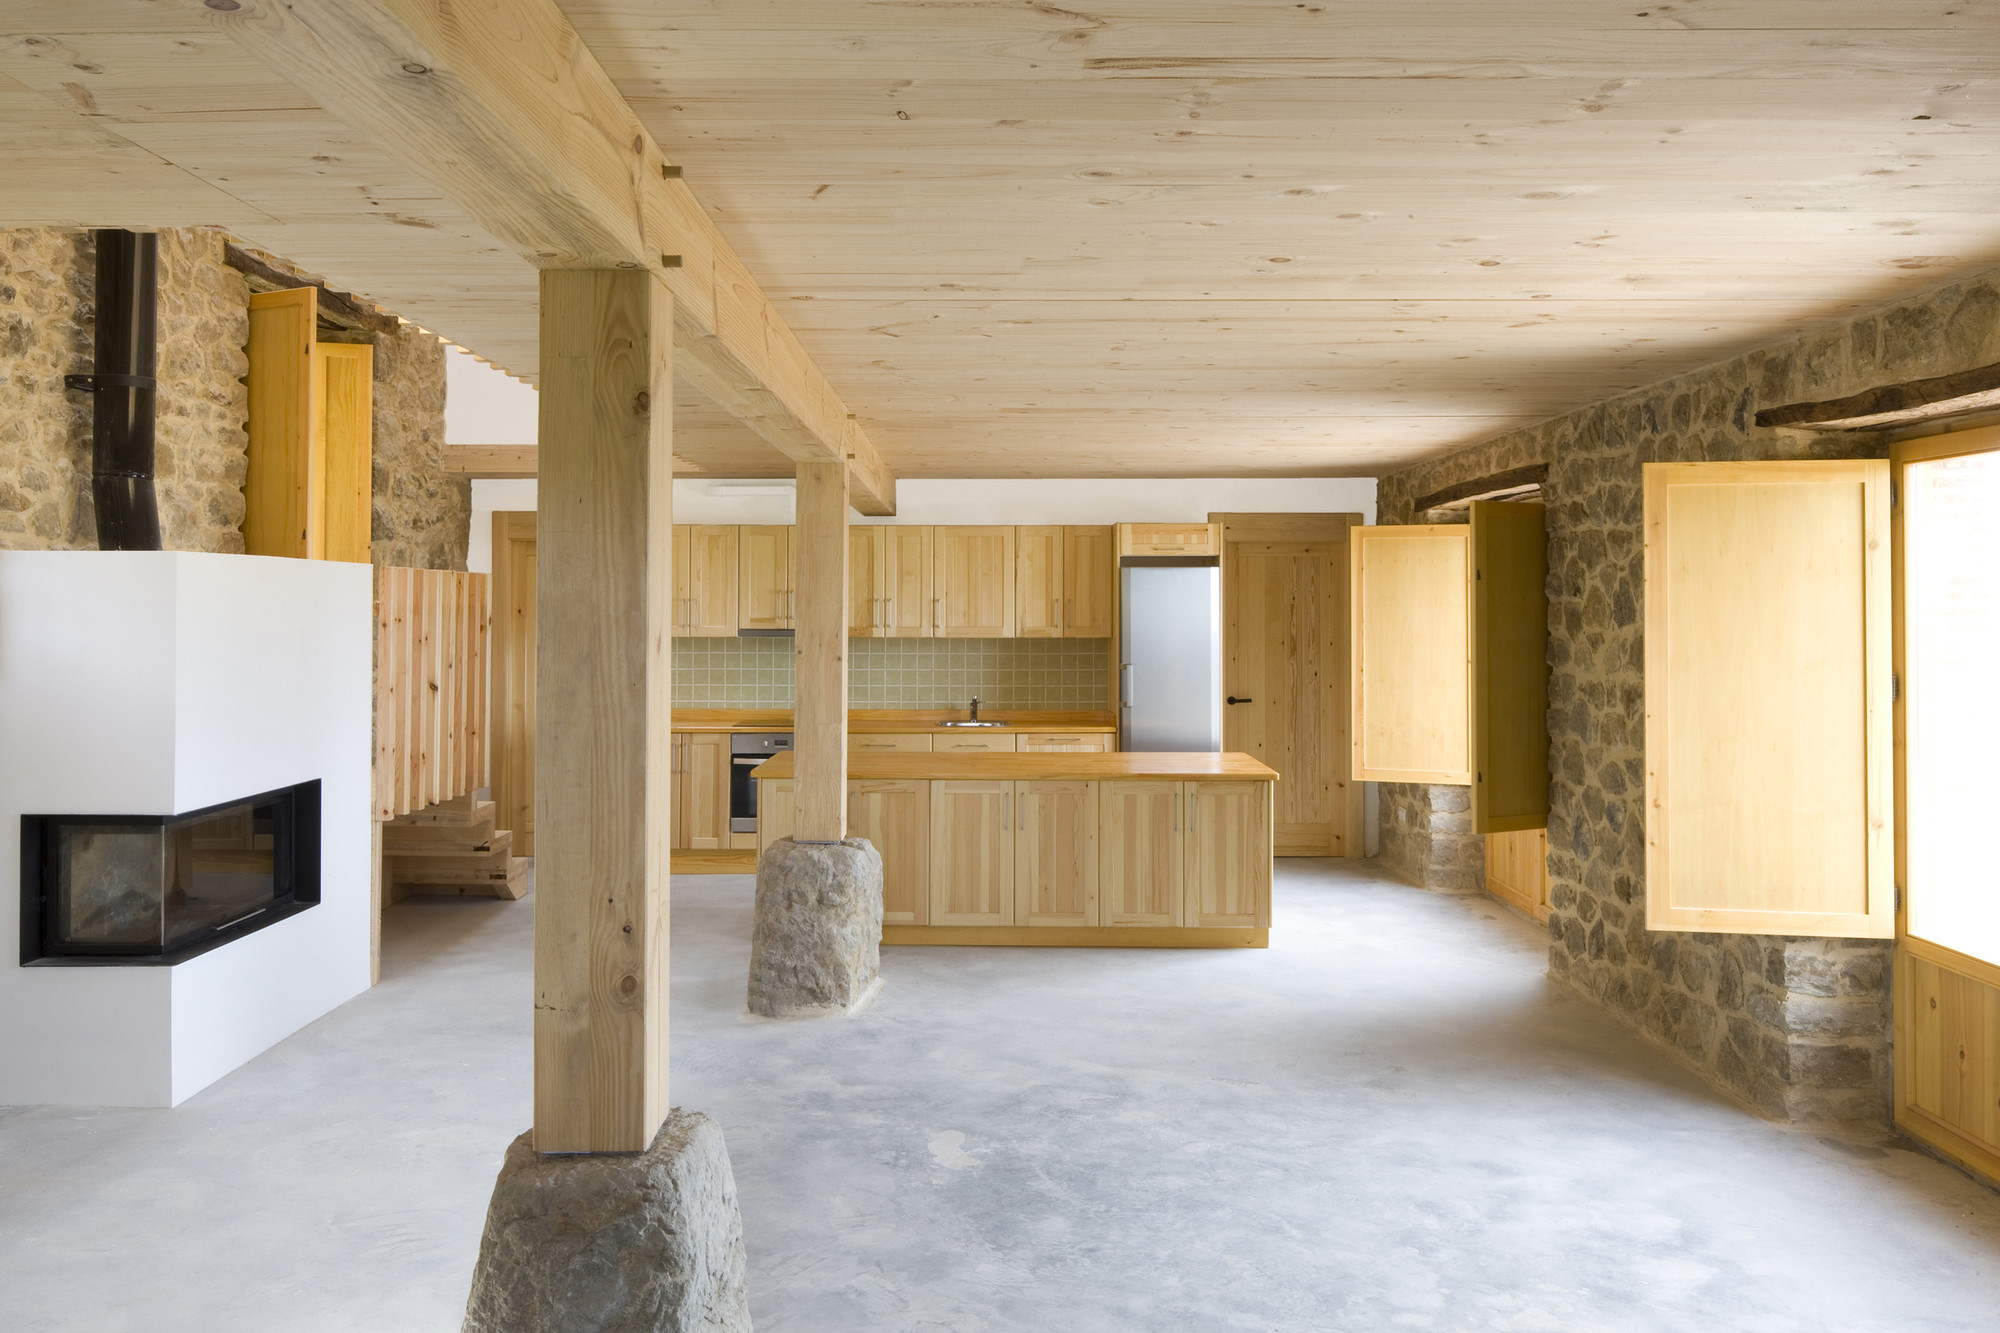 Country house renovation 2260mm arquitectes archdaily for House renovation